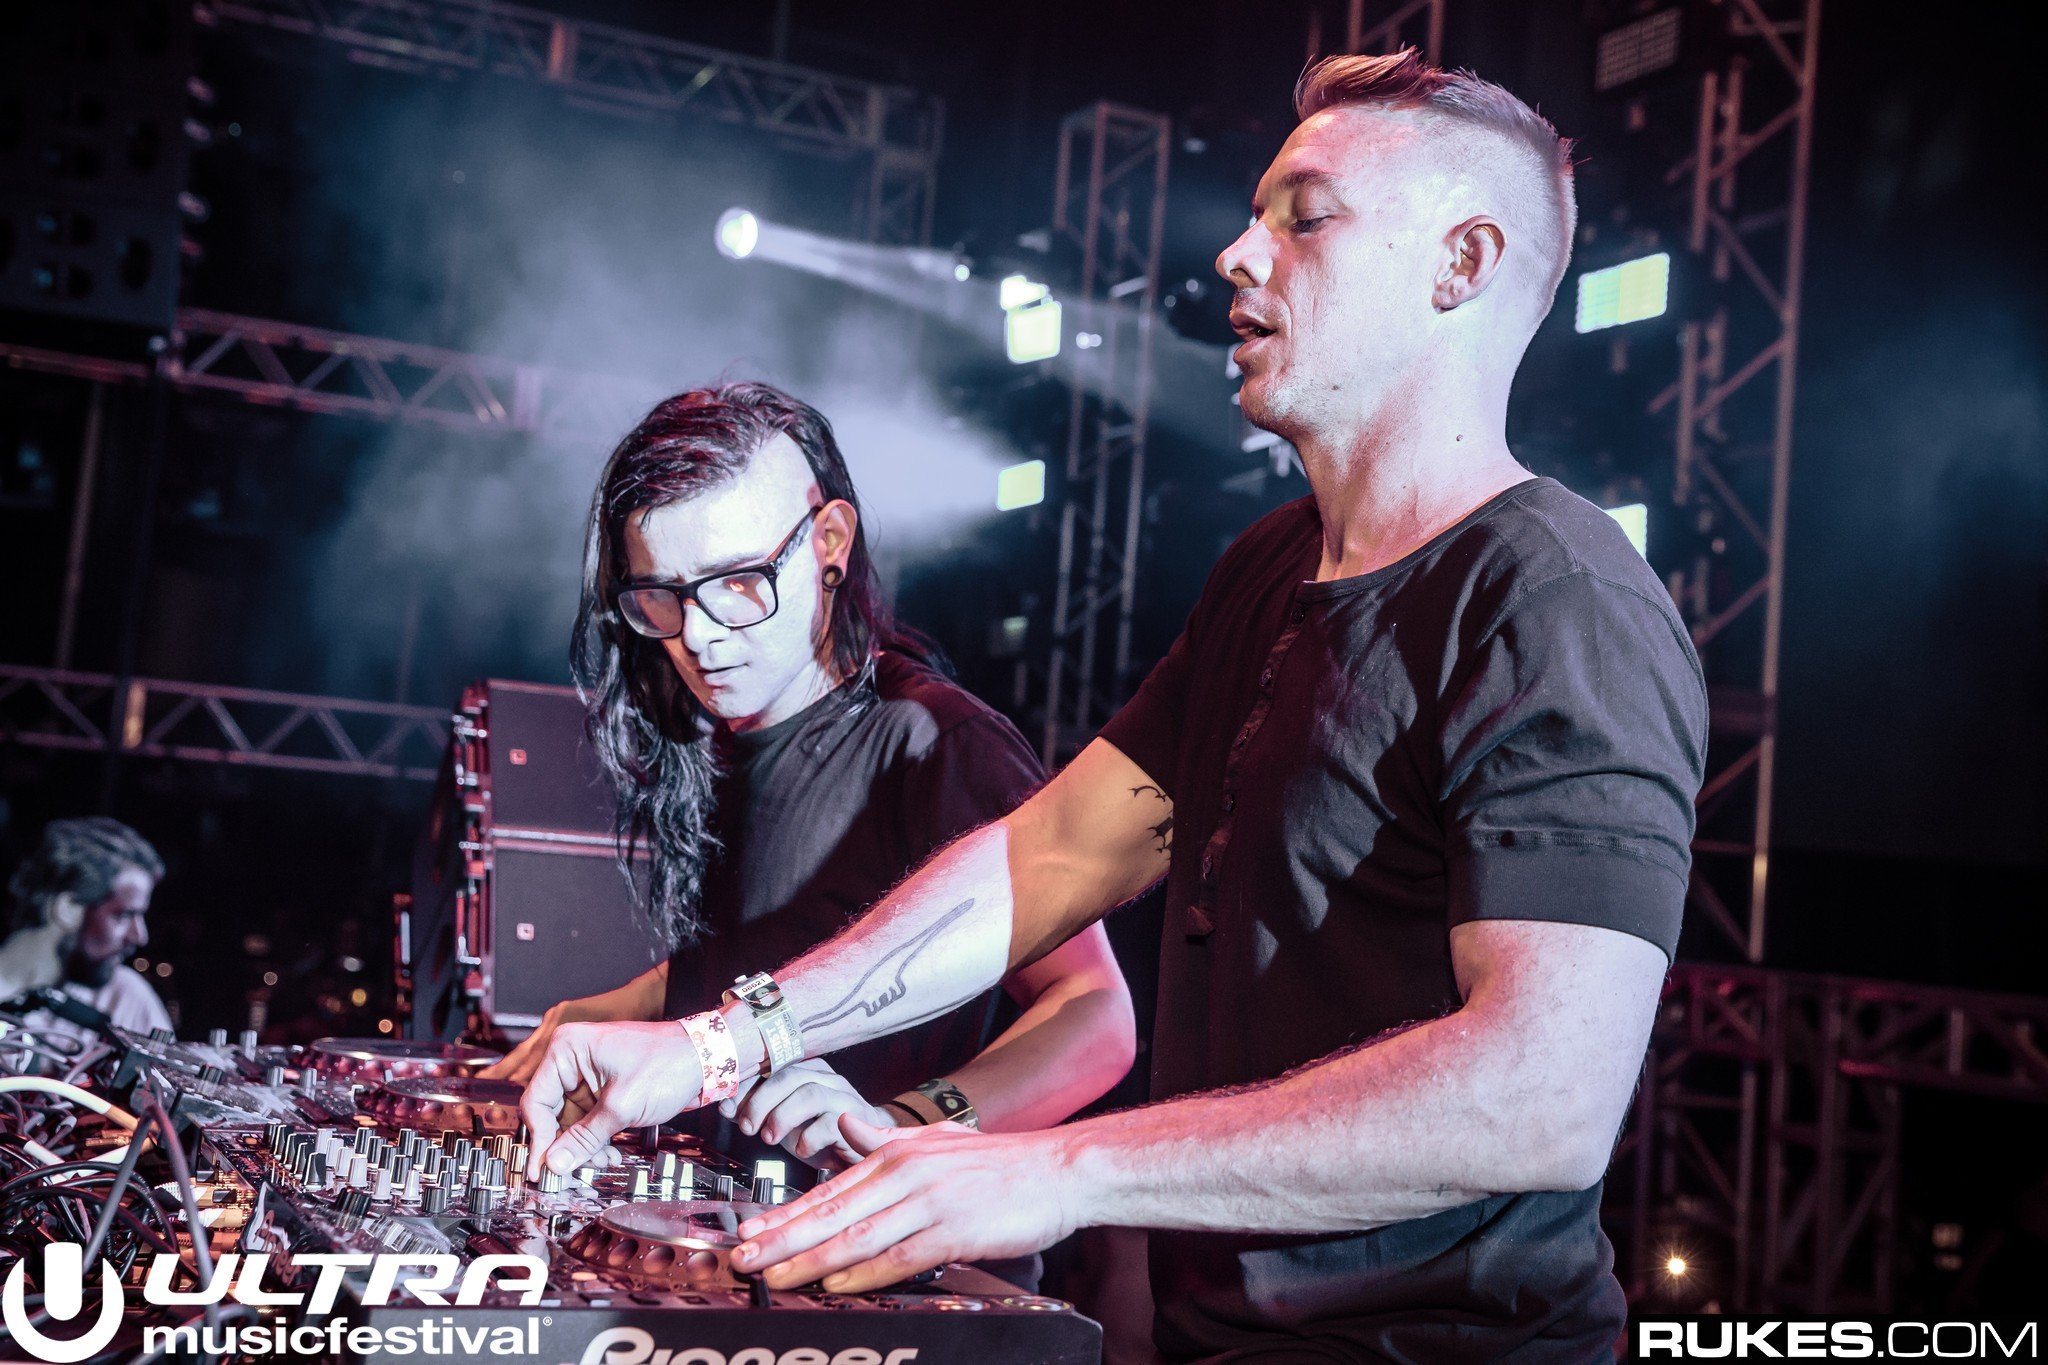 jack Ü teases reunion if three guys from switzerland can do it